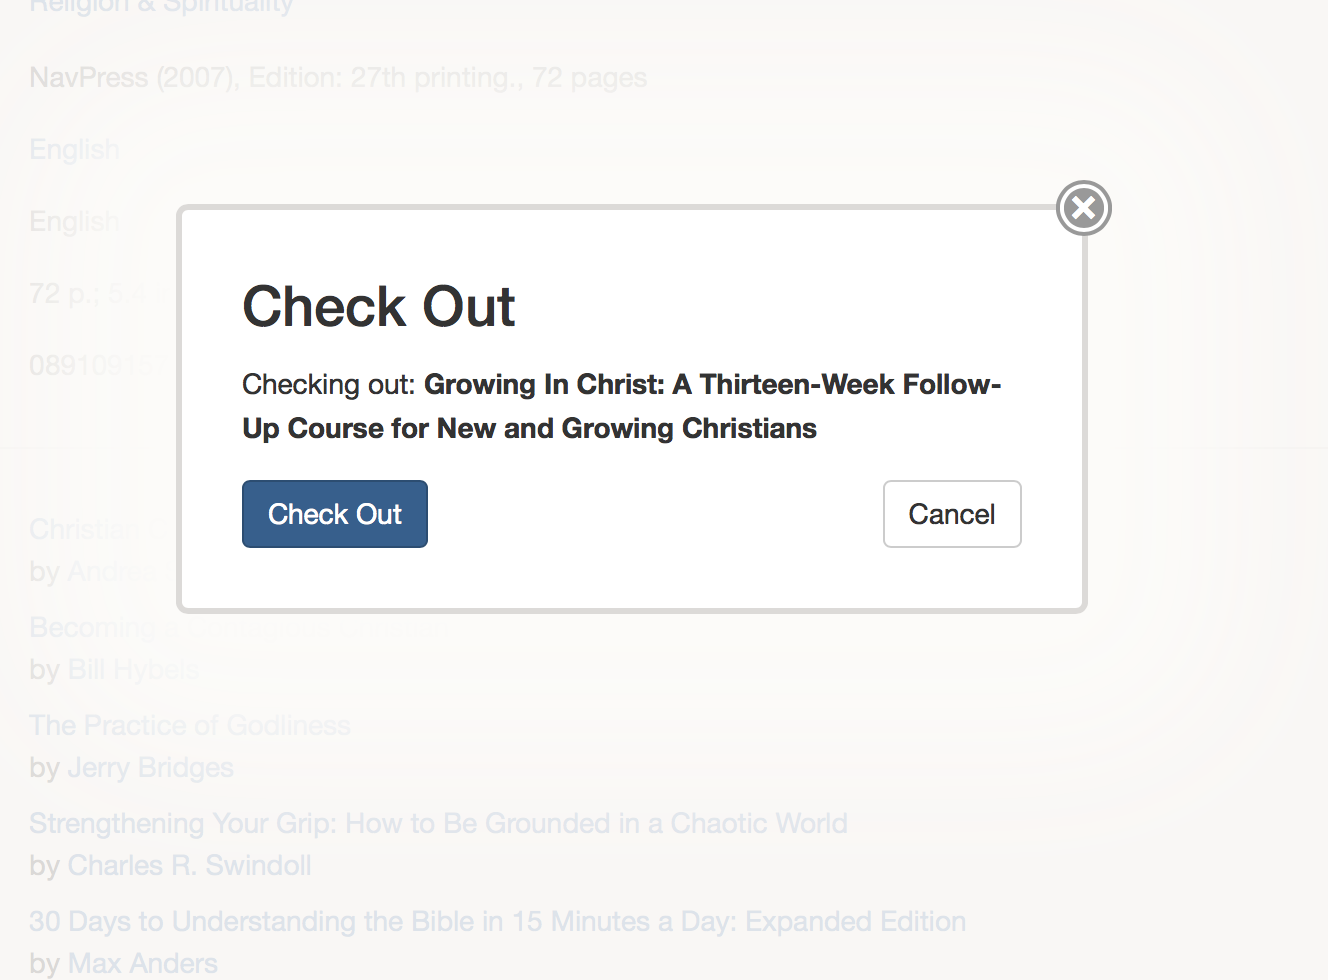 """Click """"Check Out"""" to finalize the transaction, or click """"Cancel"""" if you want to go back."""